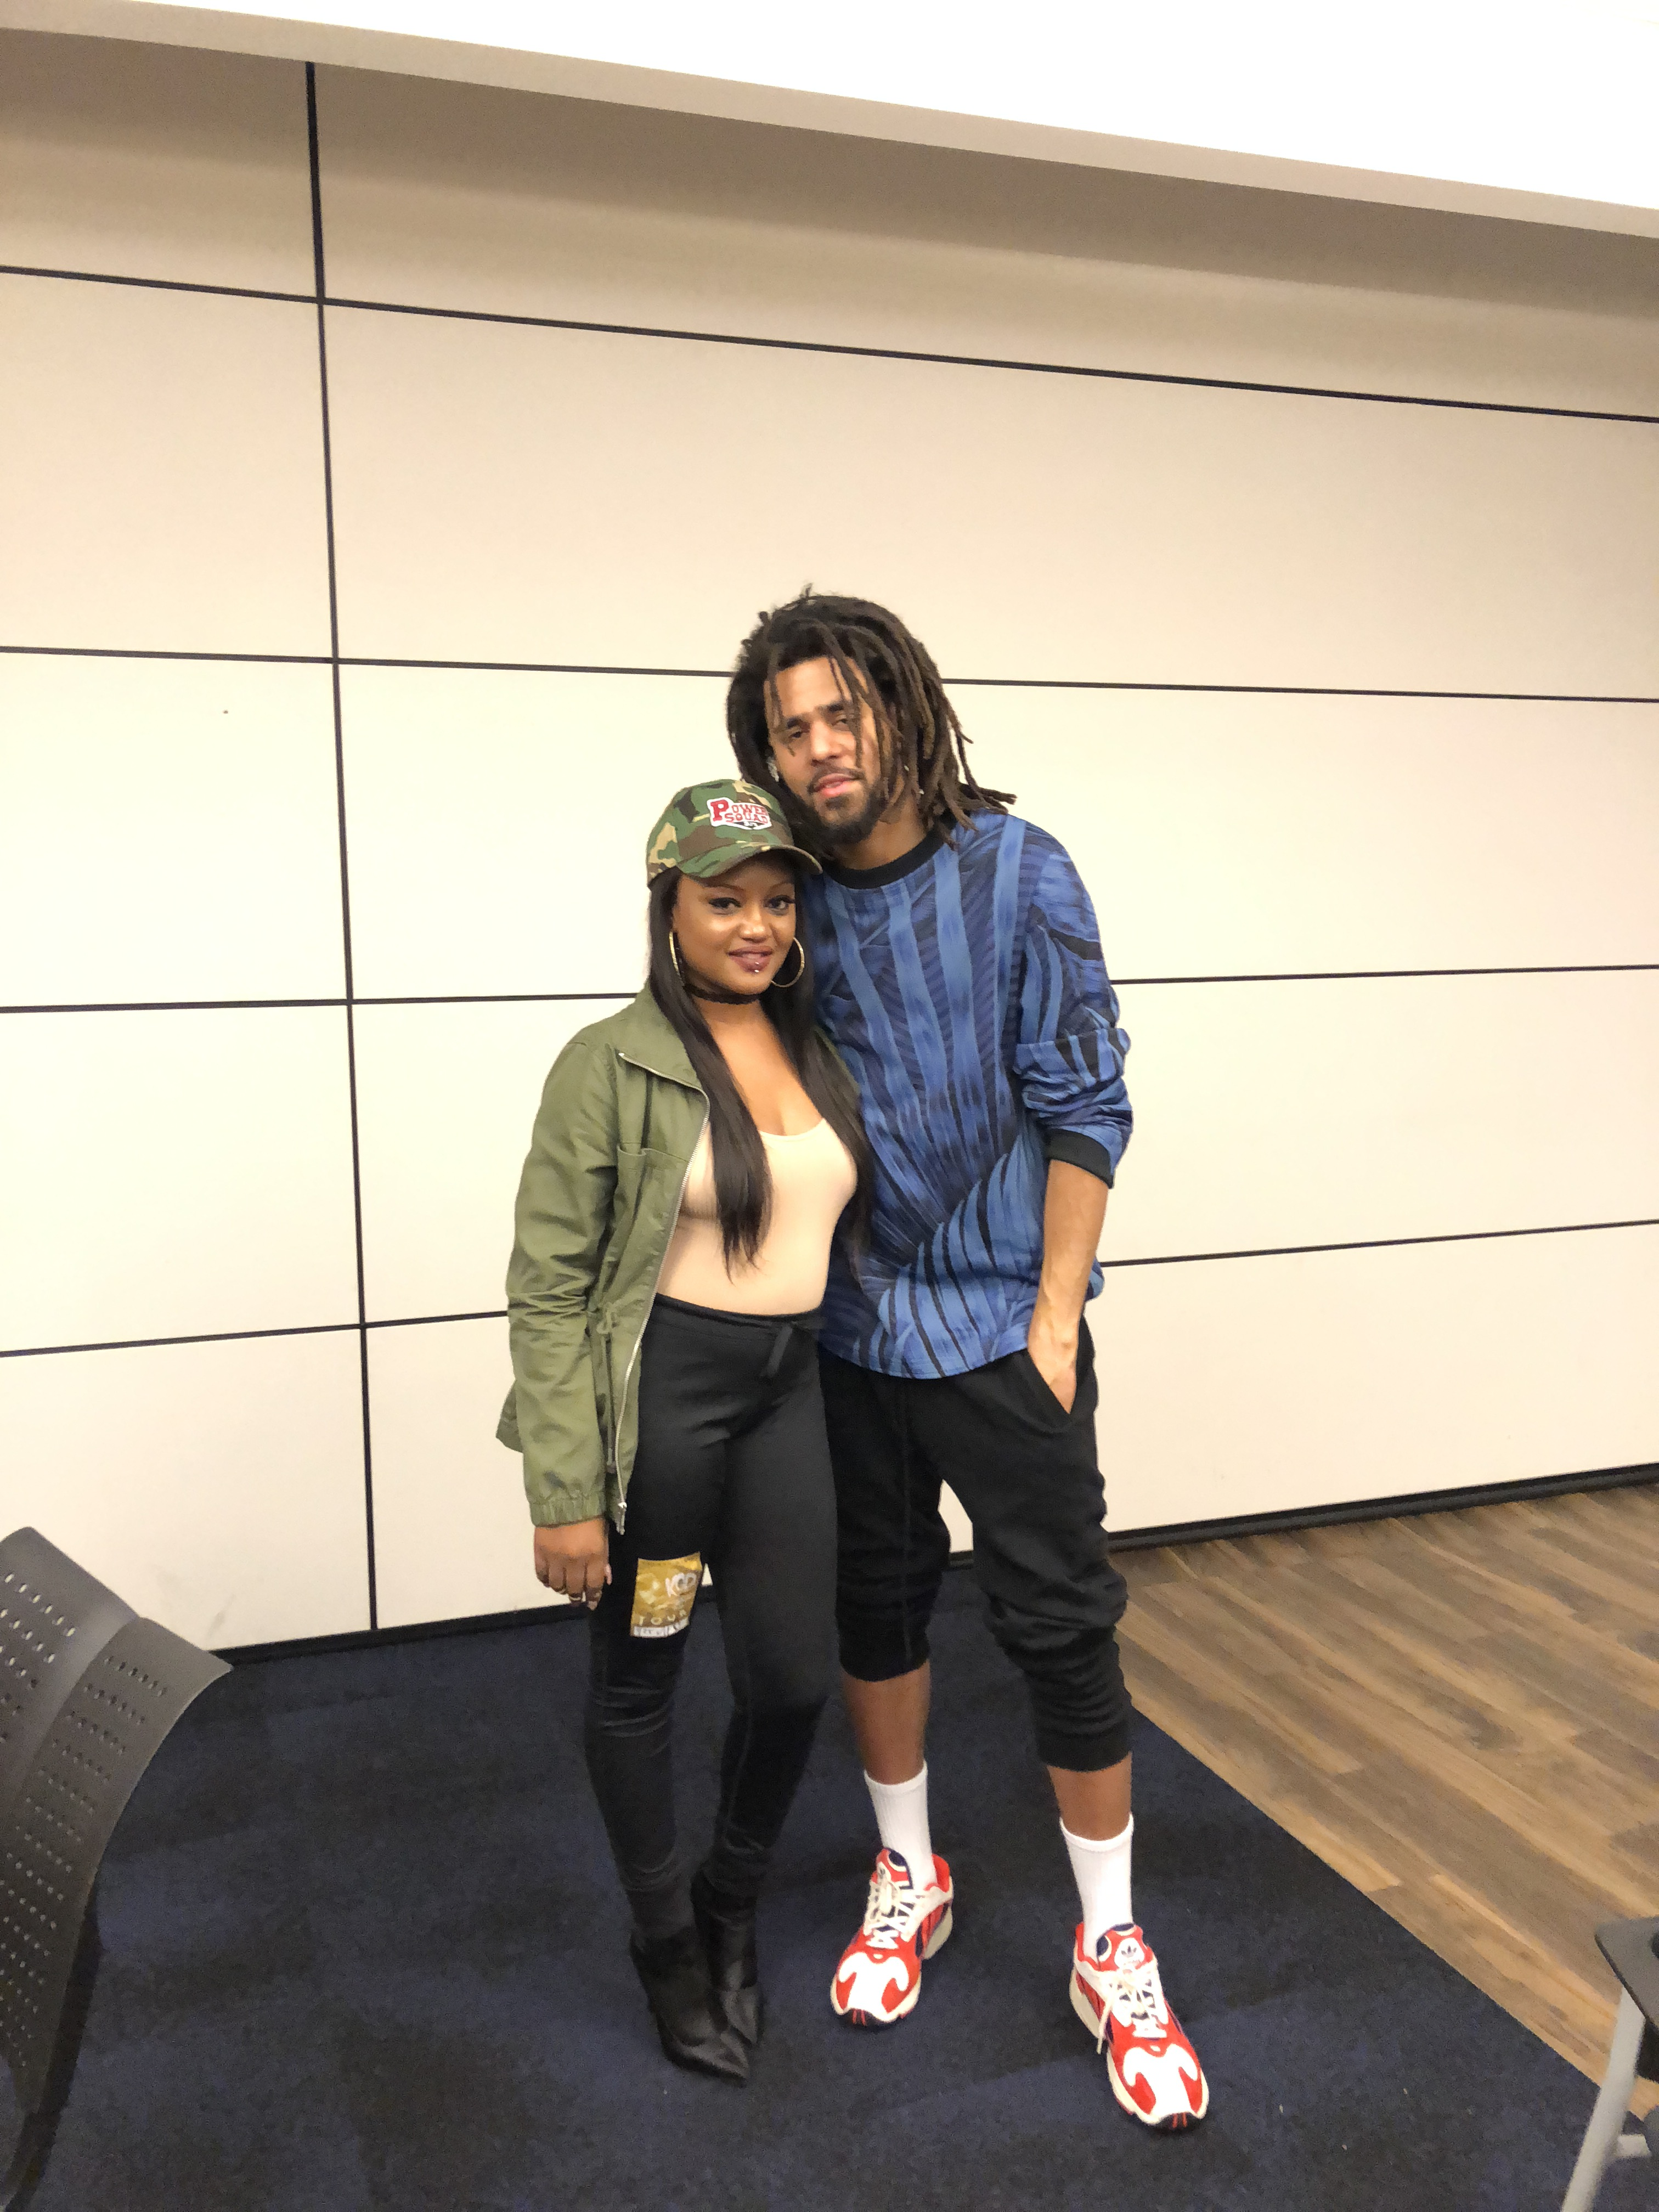 J cole kod tour buffalo new york wdkx after the show j cole did a meet and greet with wdkx listeners m4hsunfo